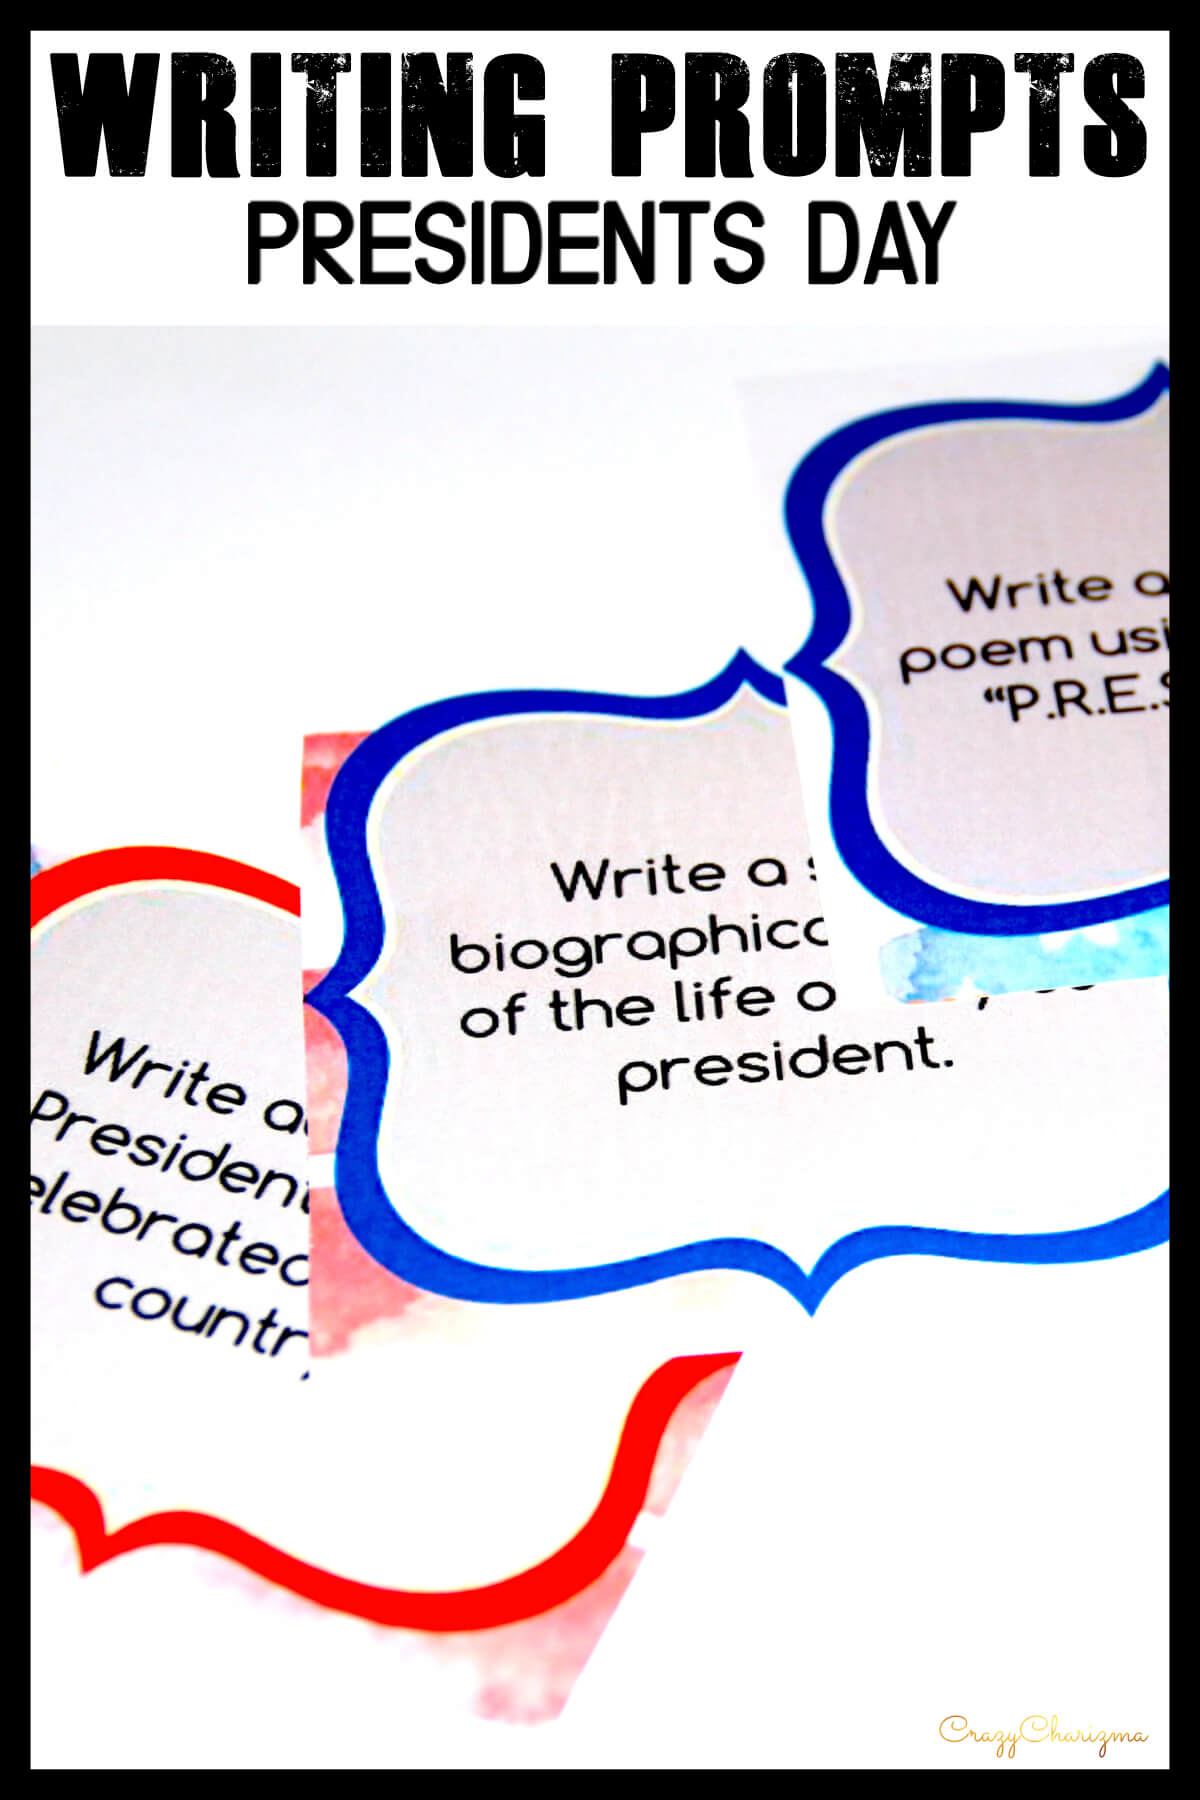 Celebrate President's Day in your classroom and provide students with writing tasks and ideas. The packet contains narrative, informational and opinion writing prompts for teens. The prompts can be used as Writing Centers, as well as with adults during ESL lessons.